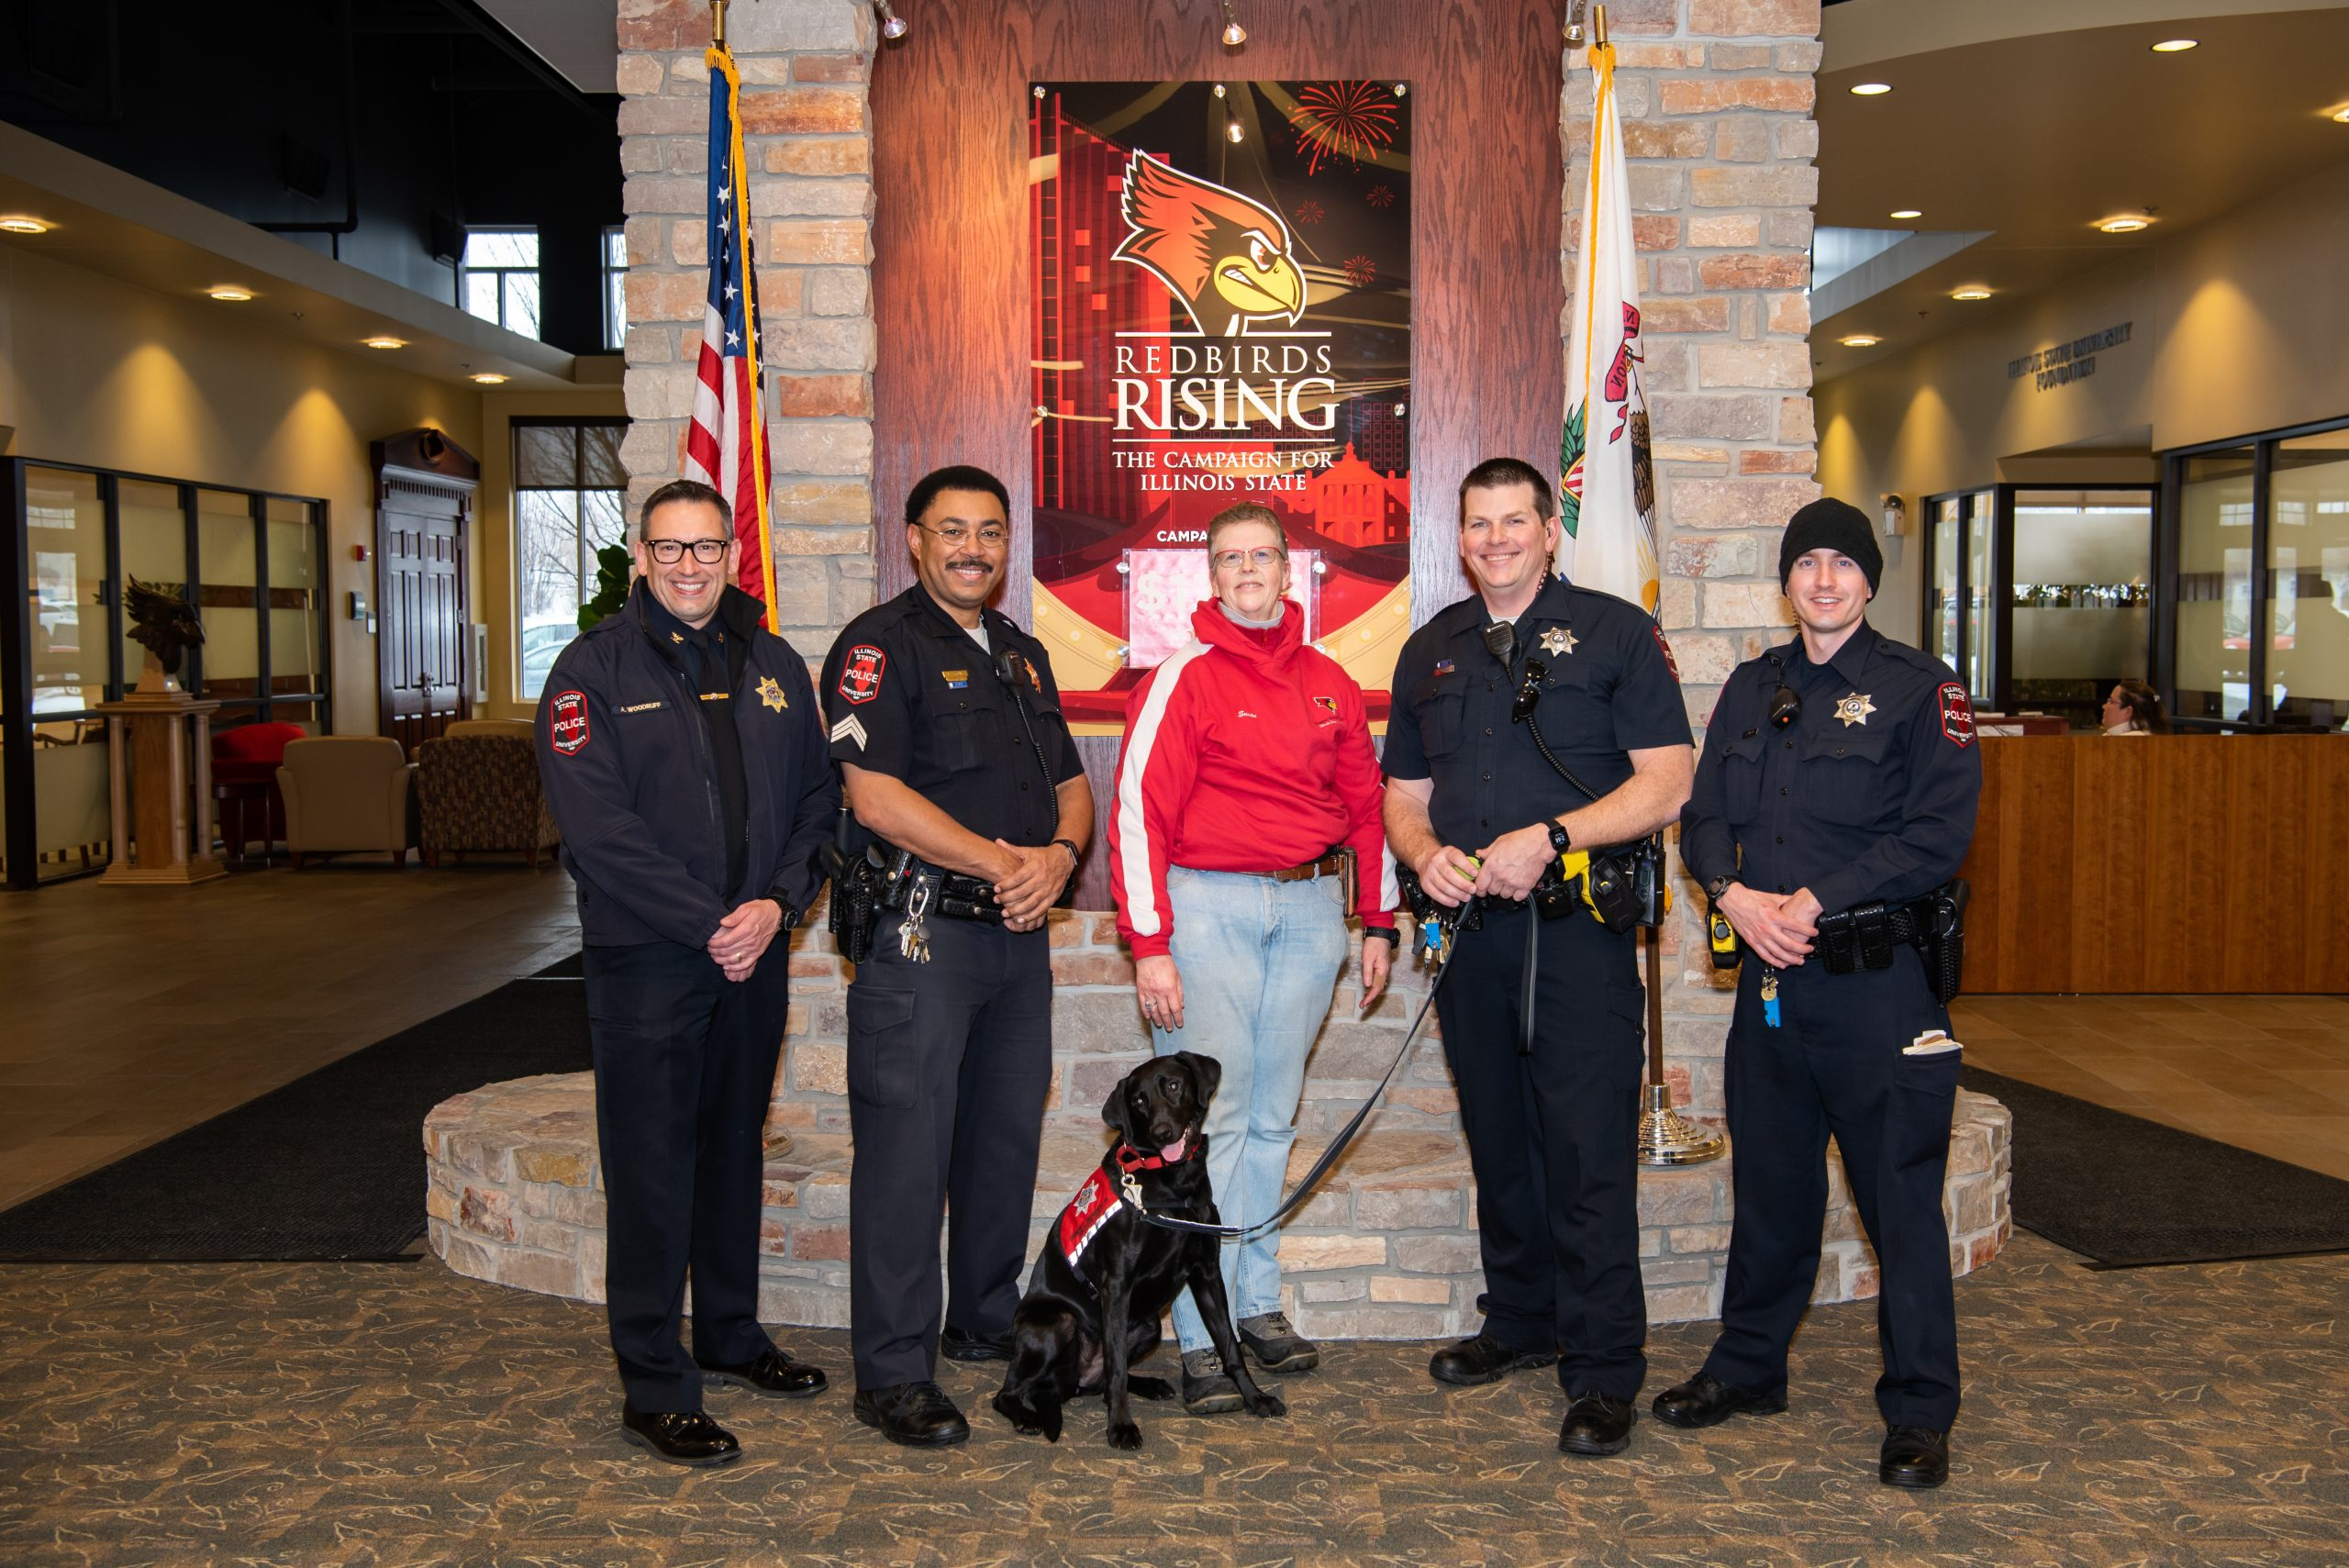 Susan Cameron standing alongside Illinois State University Police Chief Aaron Woodruff and the Community Engagement Unit.